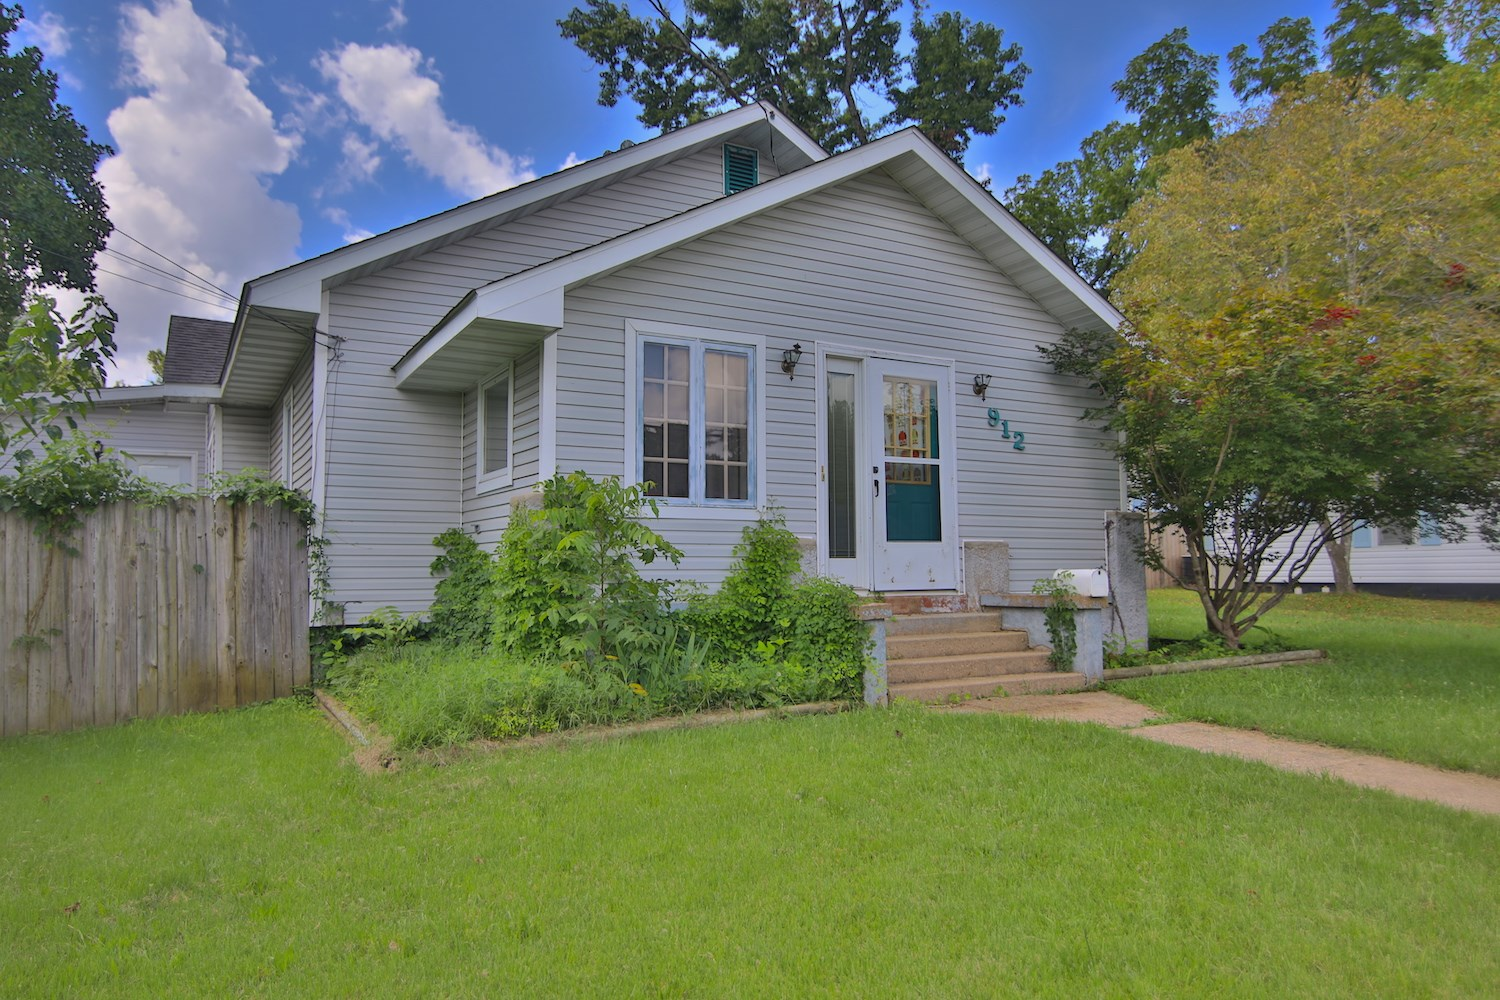 Home for Sale in West Plains Missouri